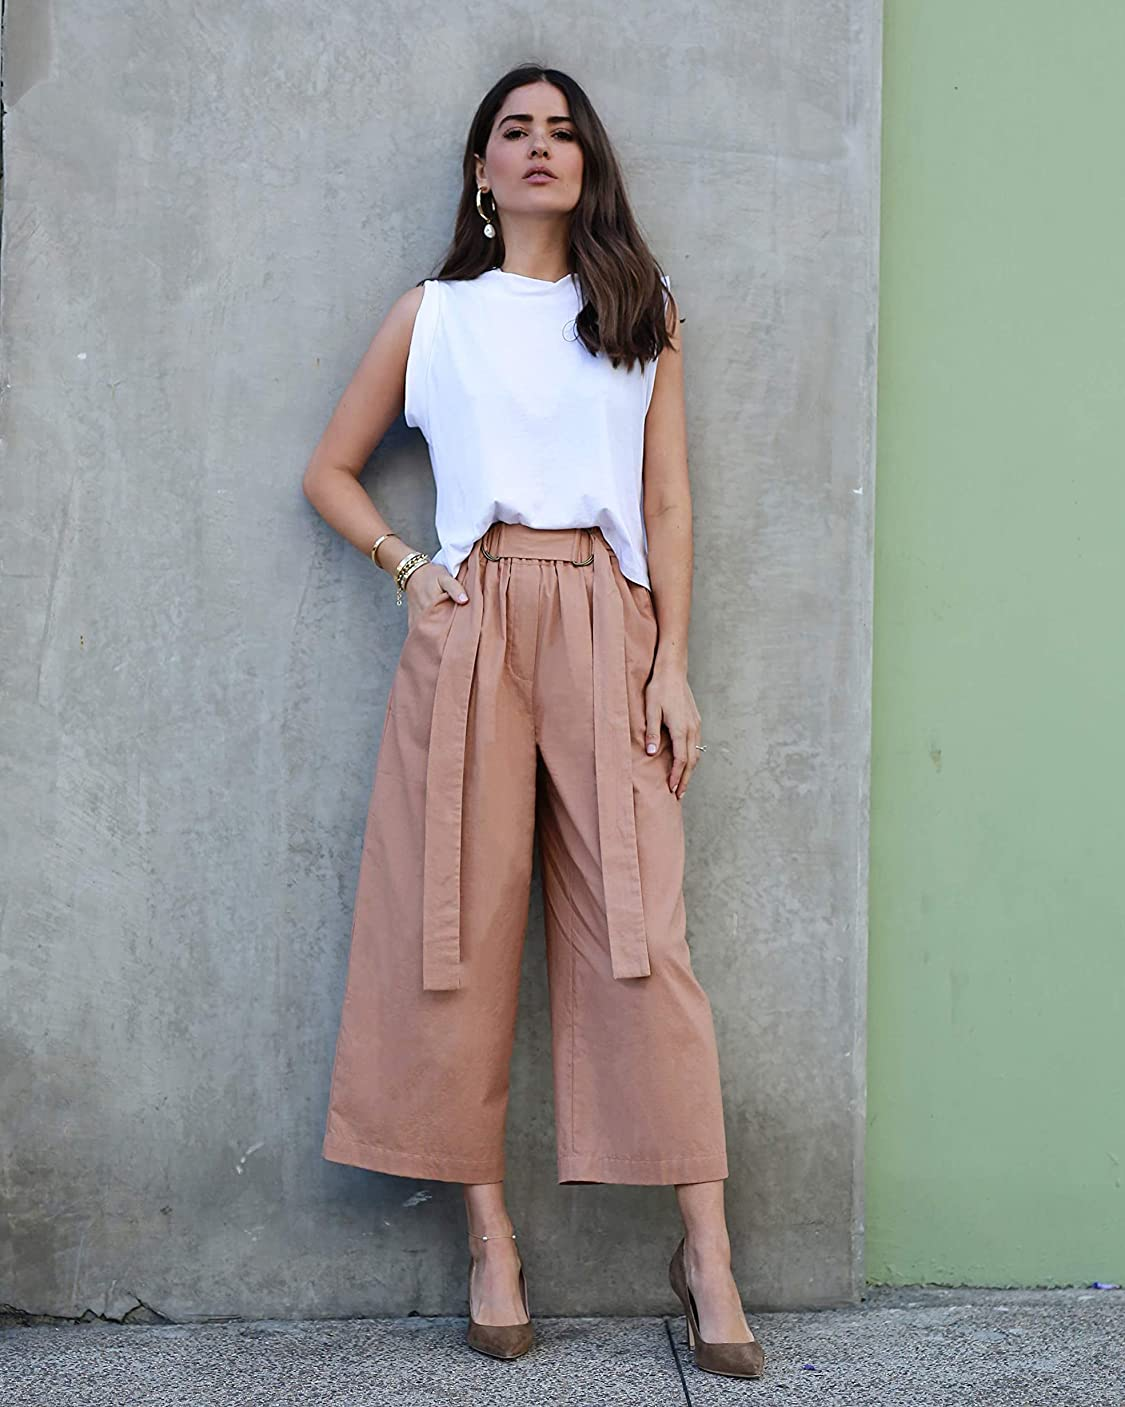 The Drop wears The Drop Women's Caramel Loose Fit High Rise Cropped Wide Leg Pant by @paolaalberdi